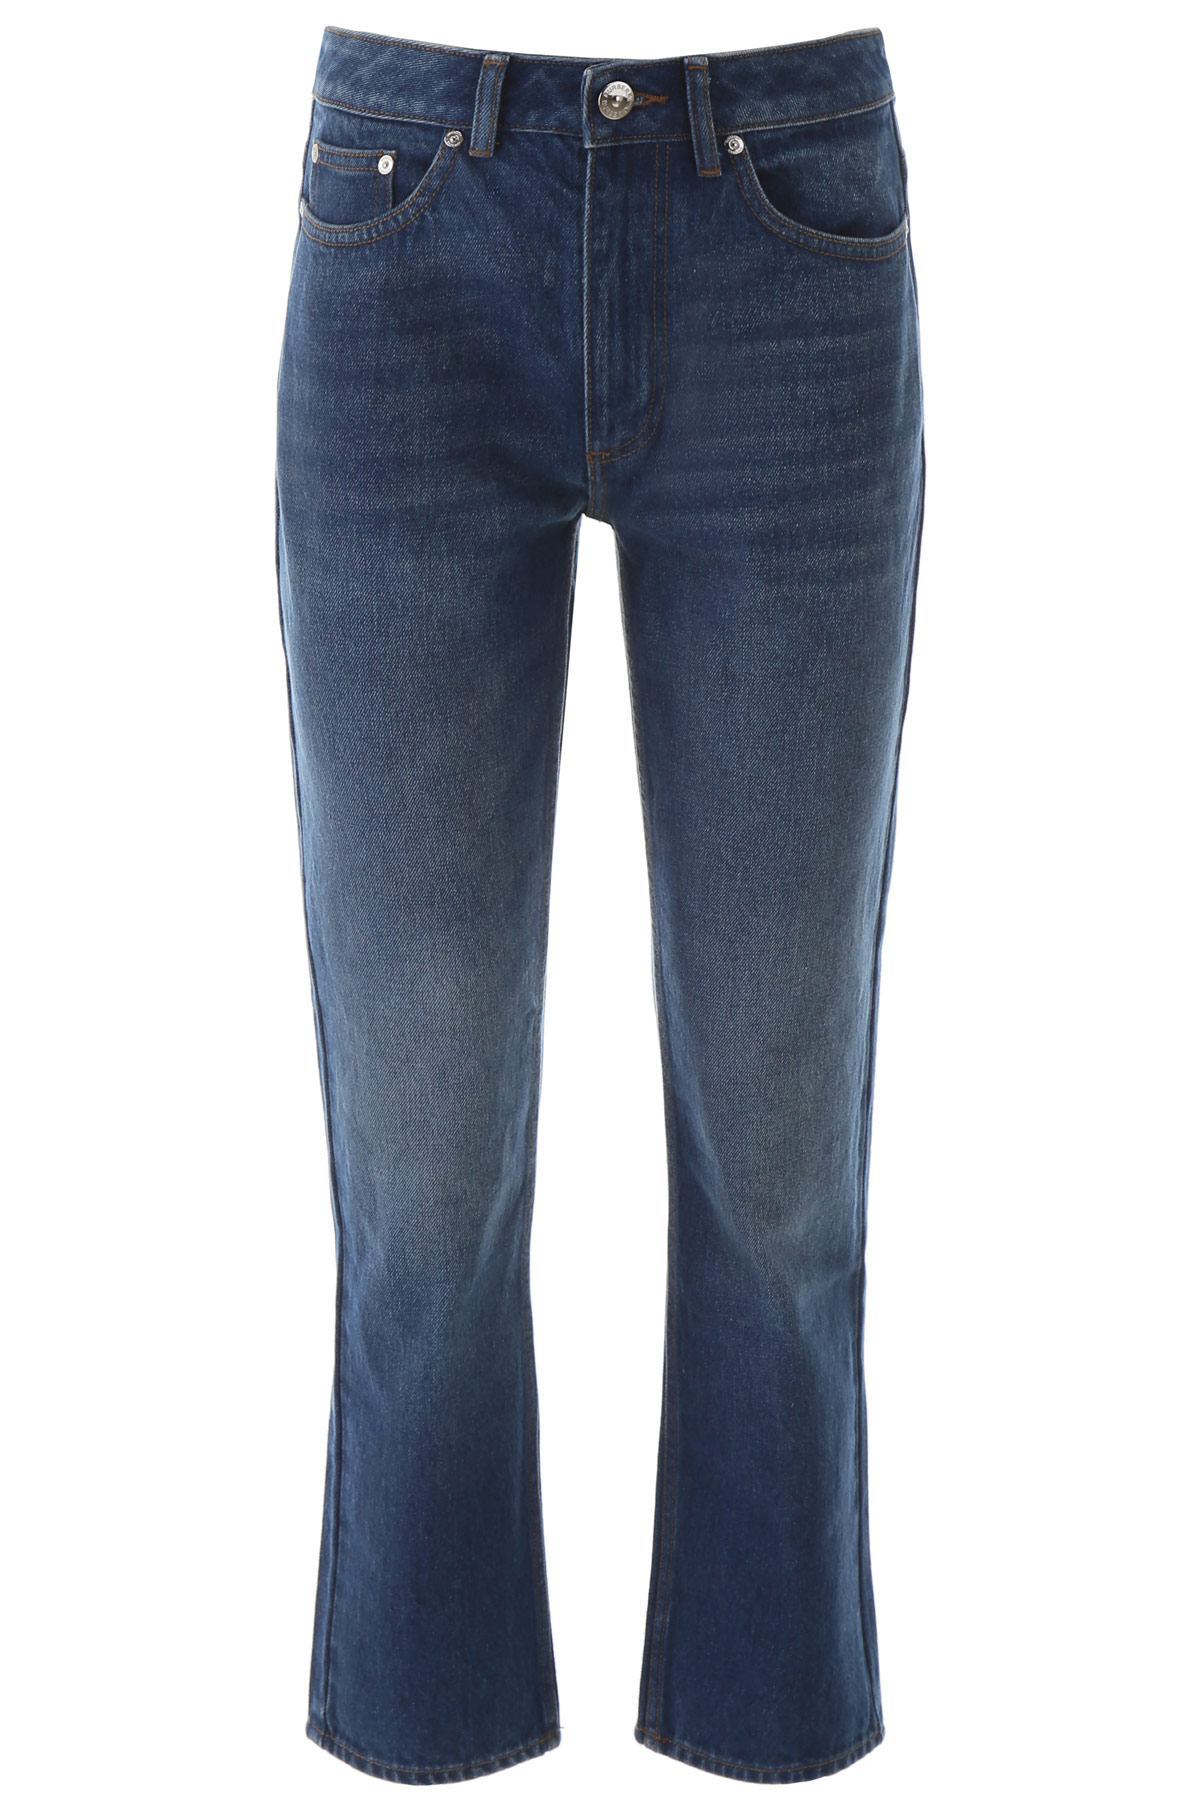 BURBERRY JEANS WITH CHAIN 27 Blue Cotton, Denim